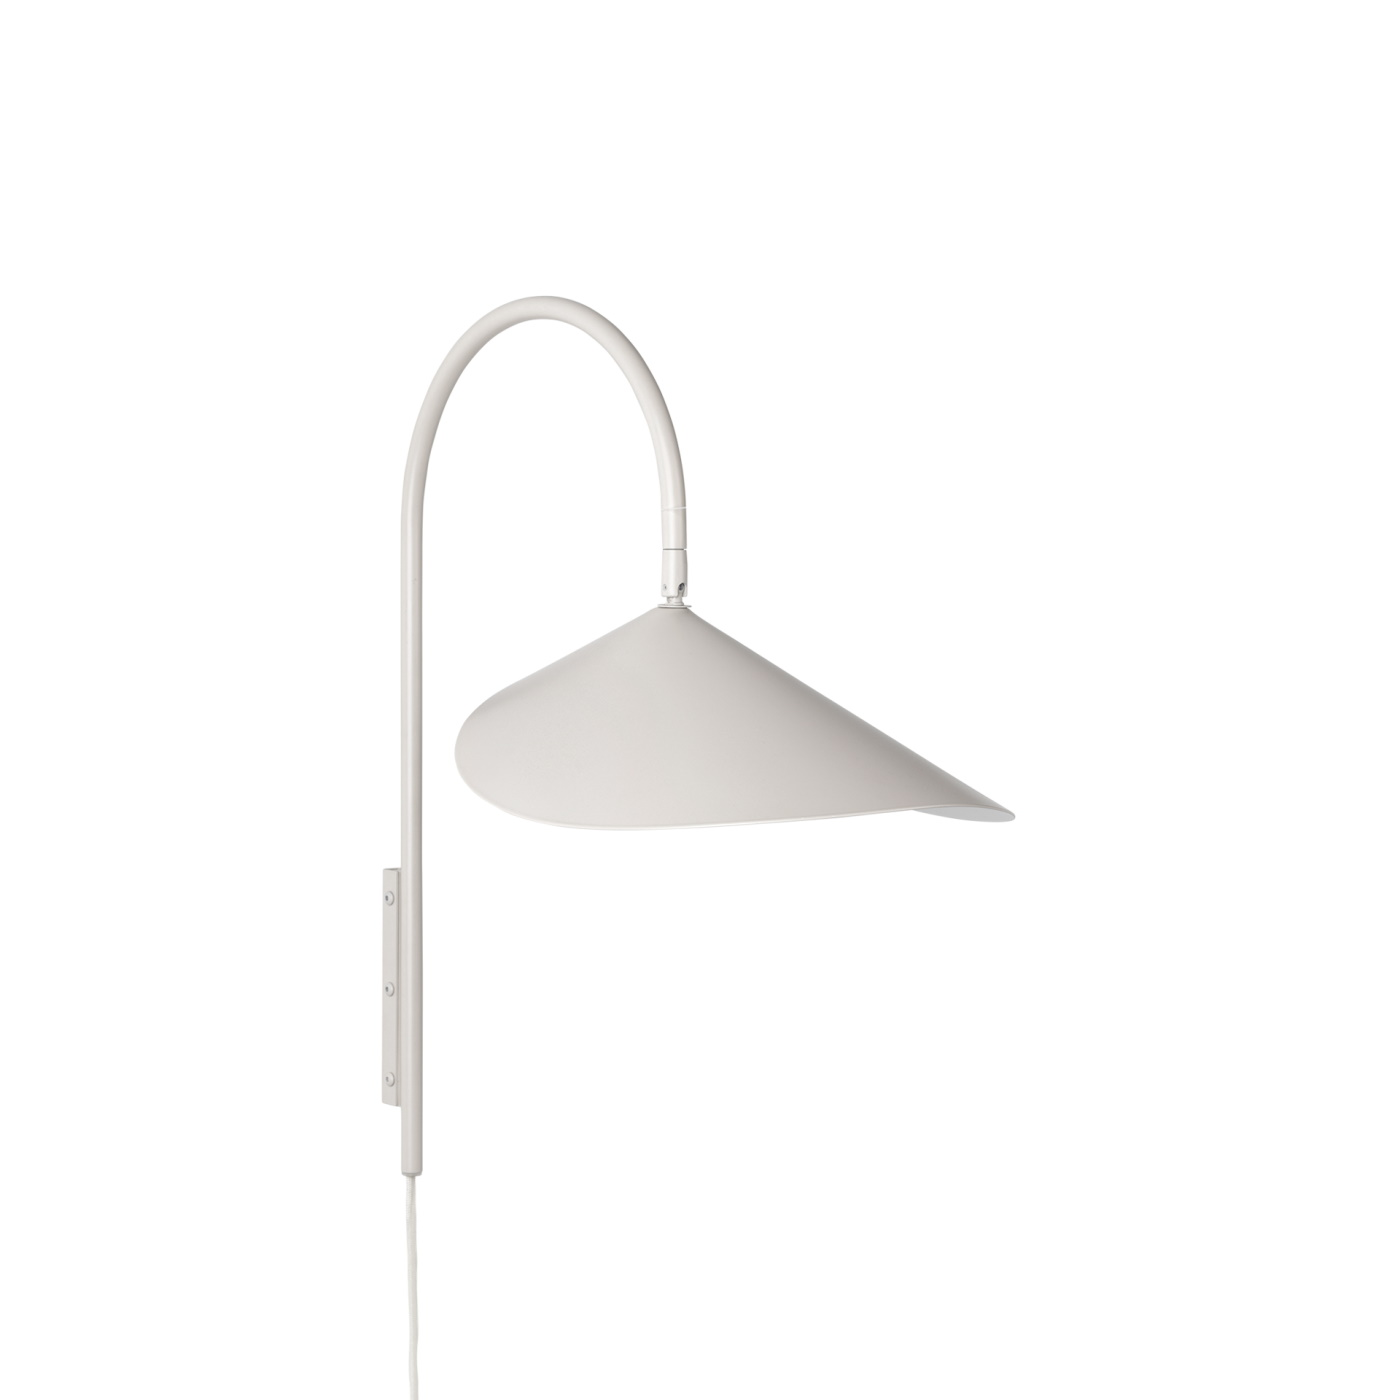 Arum Wall Lamp - Cashmere, Ferm Living